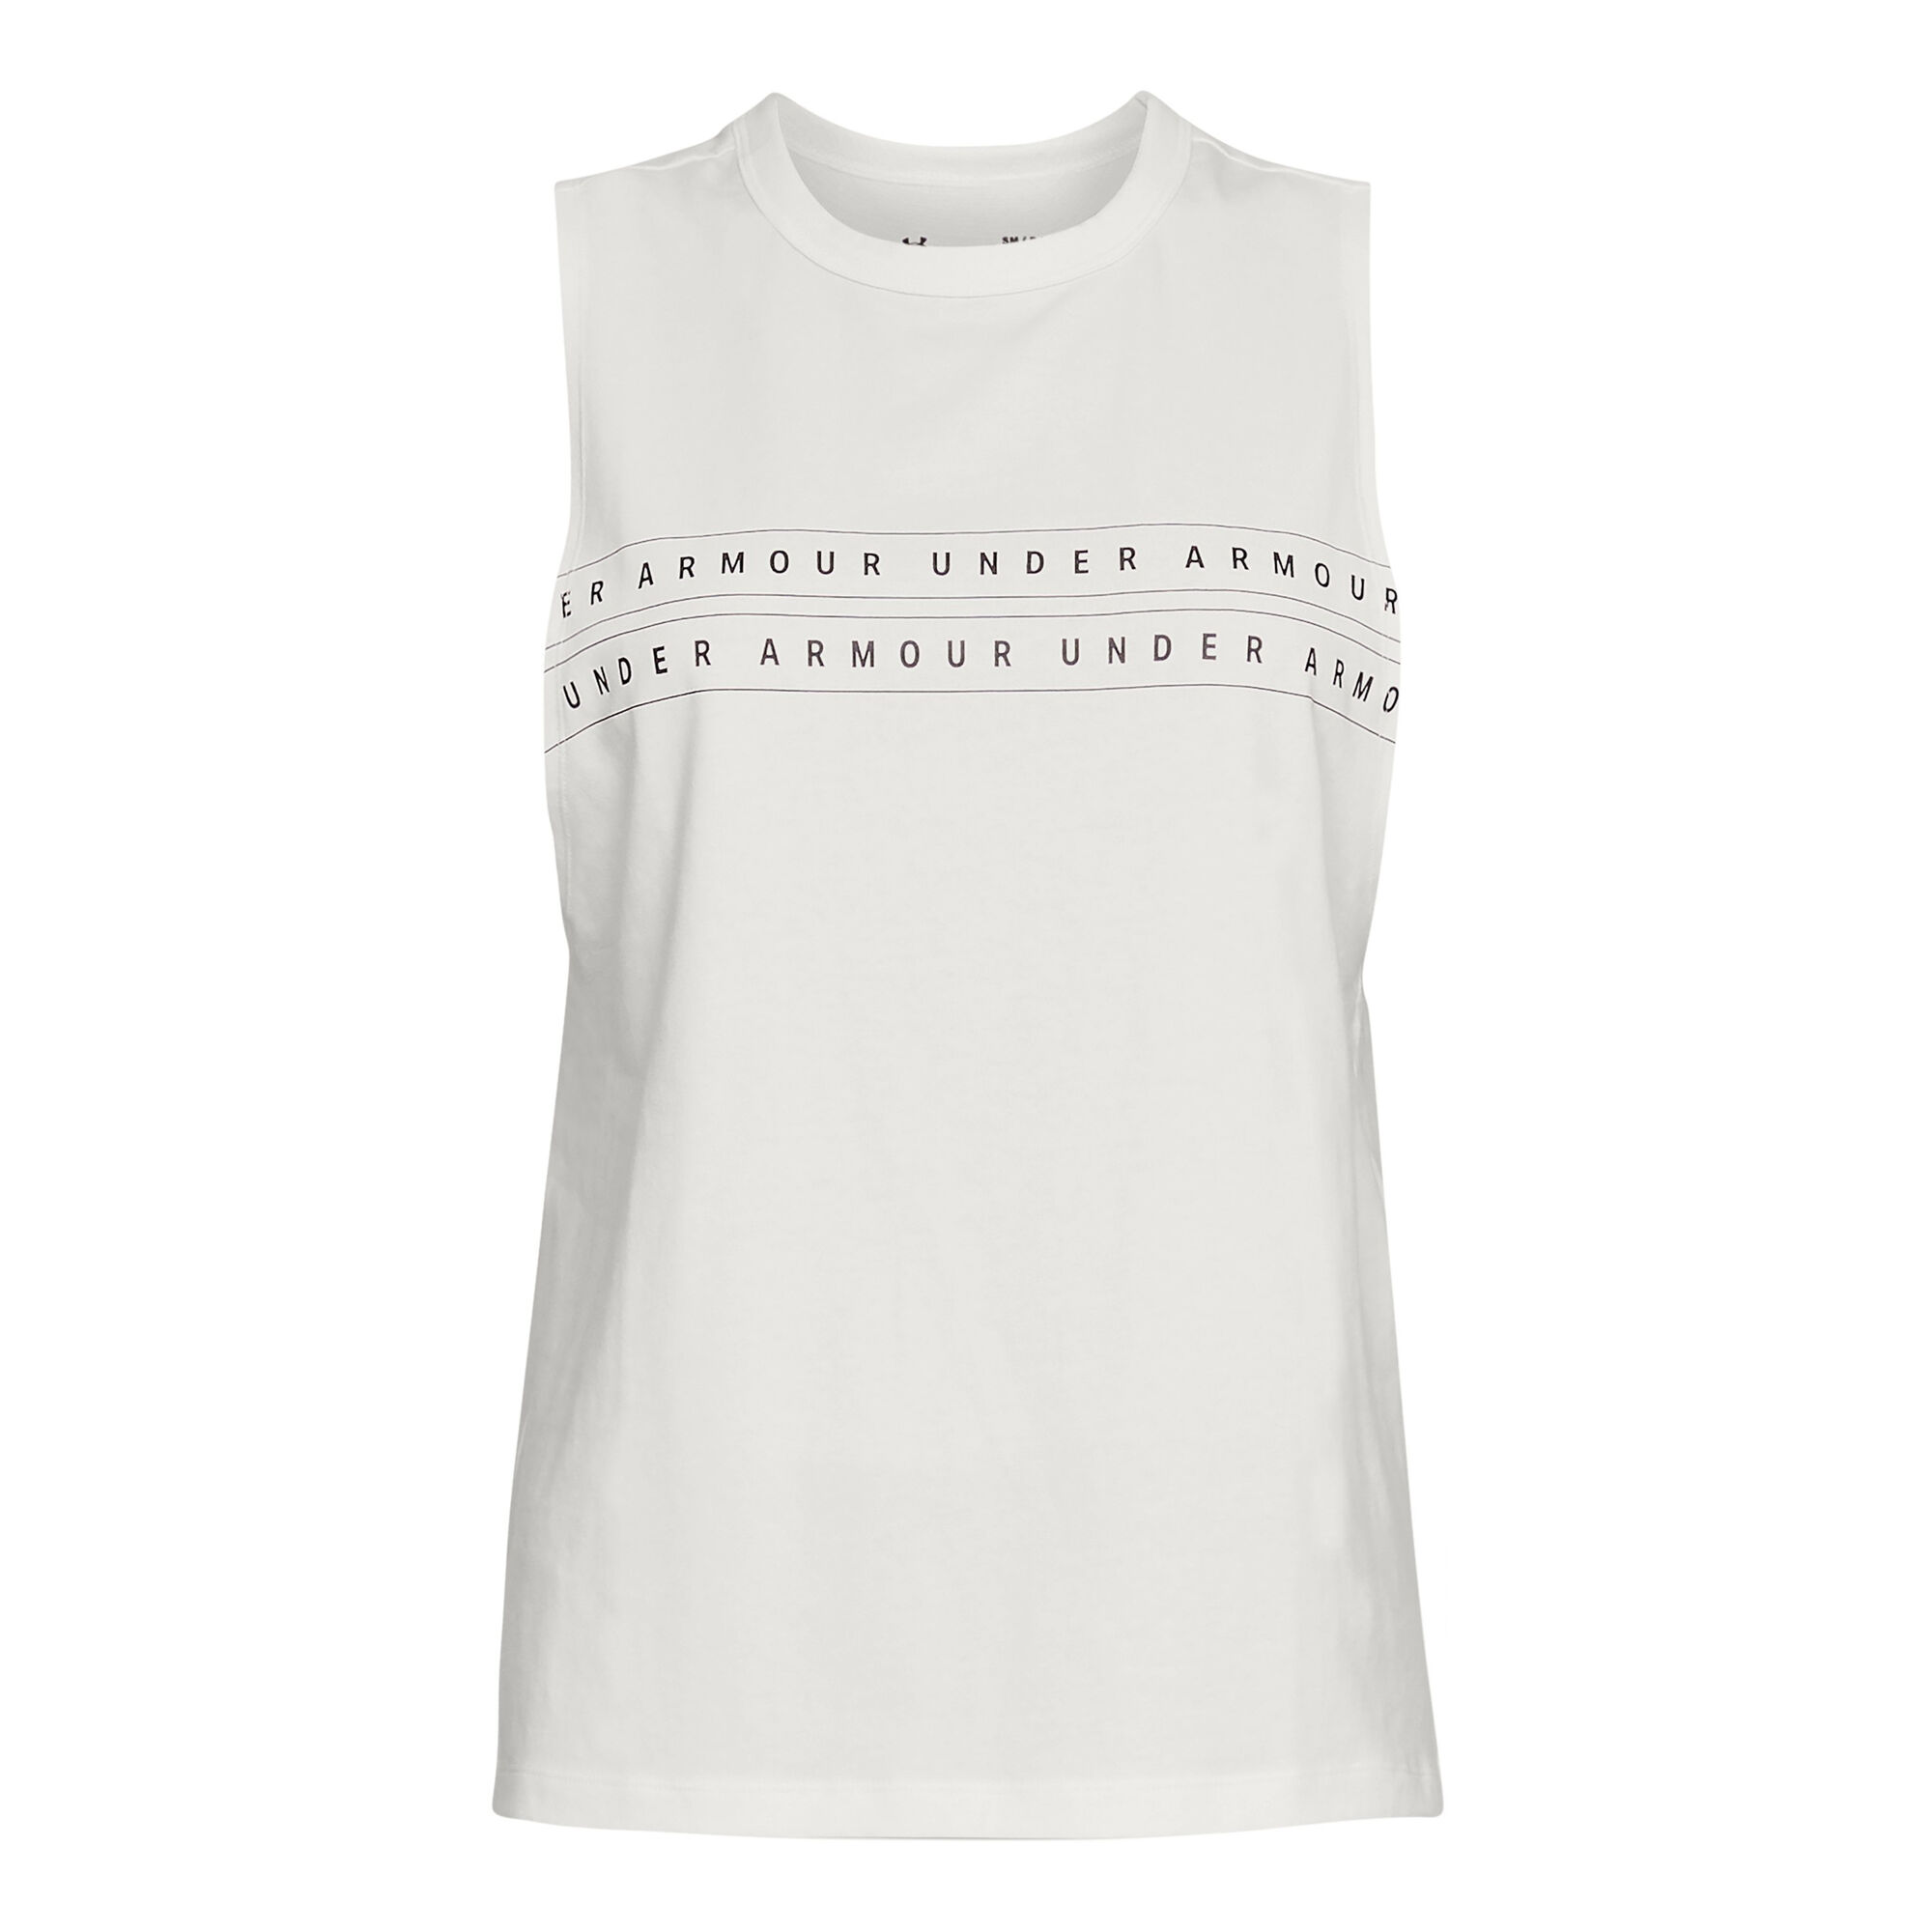 0d2c720a buy Under Armour Graphic WM Muscle Tank Top Women - White, Grey ...